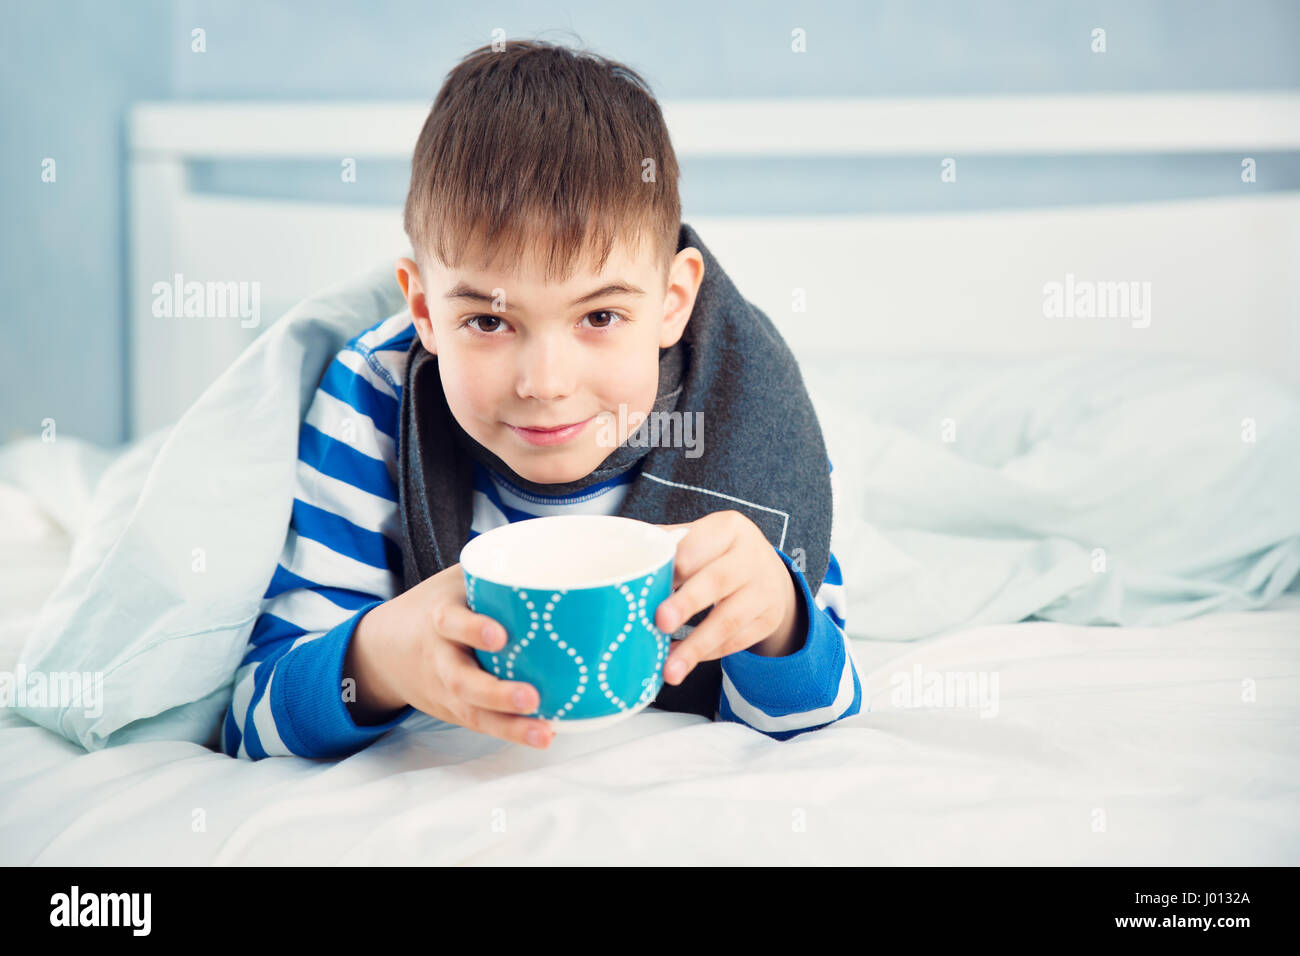 Sad boy bed stock photos sad boy bed stock images alamy ill boy lying in bed stock image altavistaventures Images